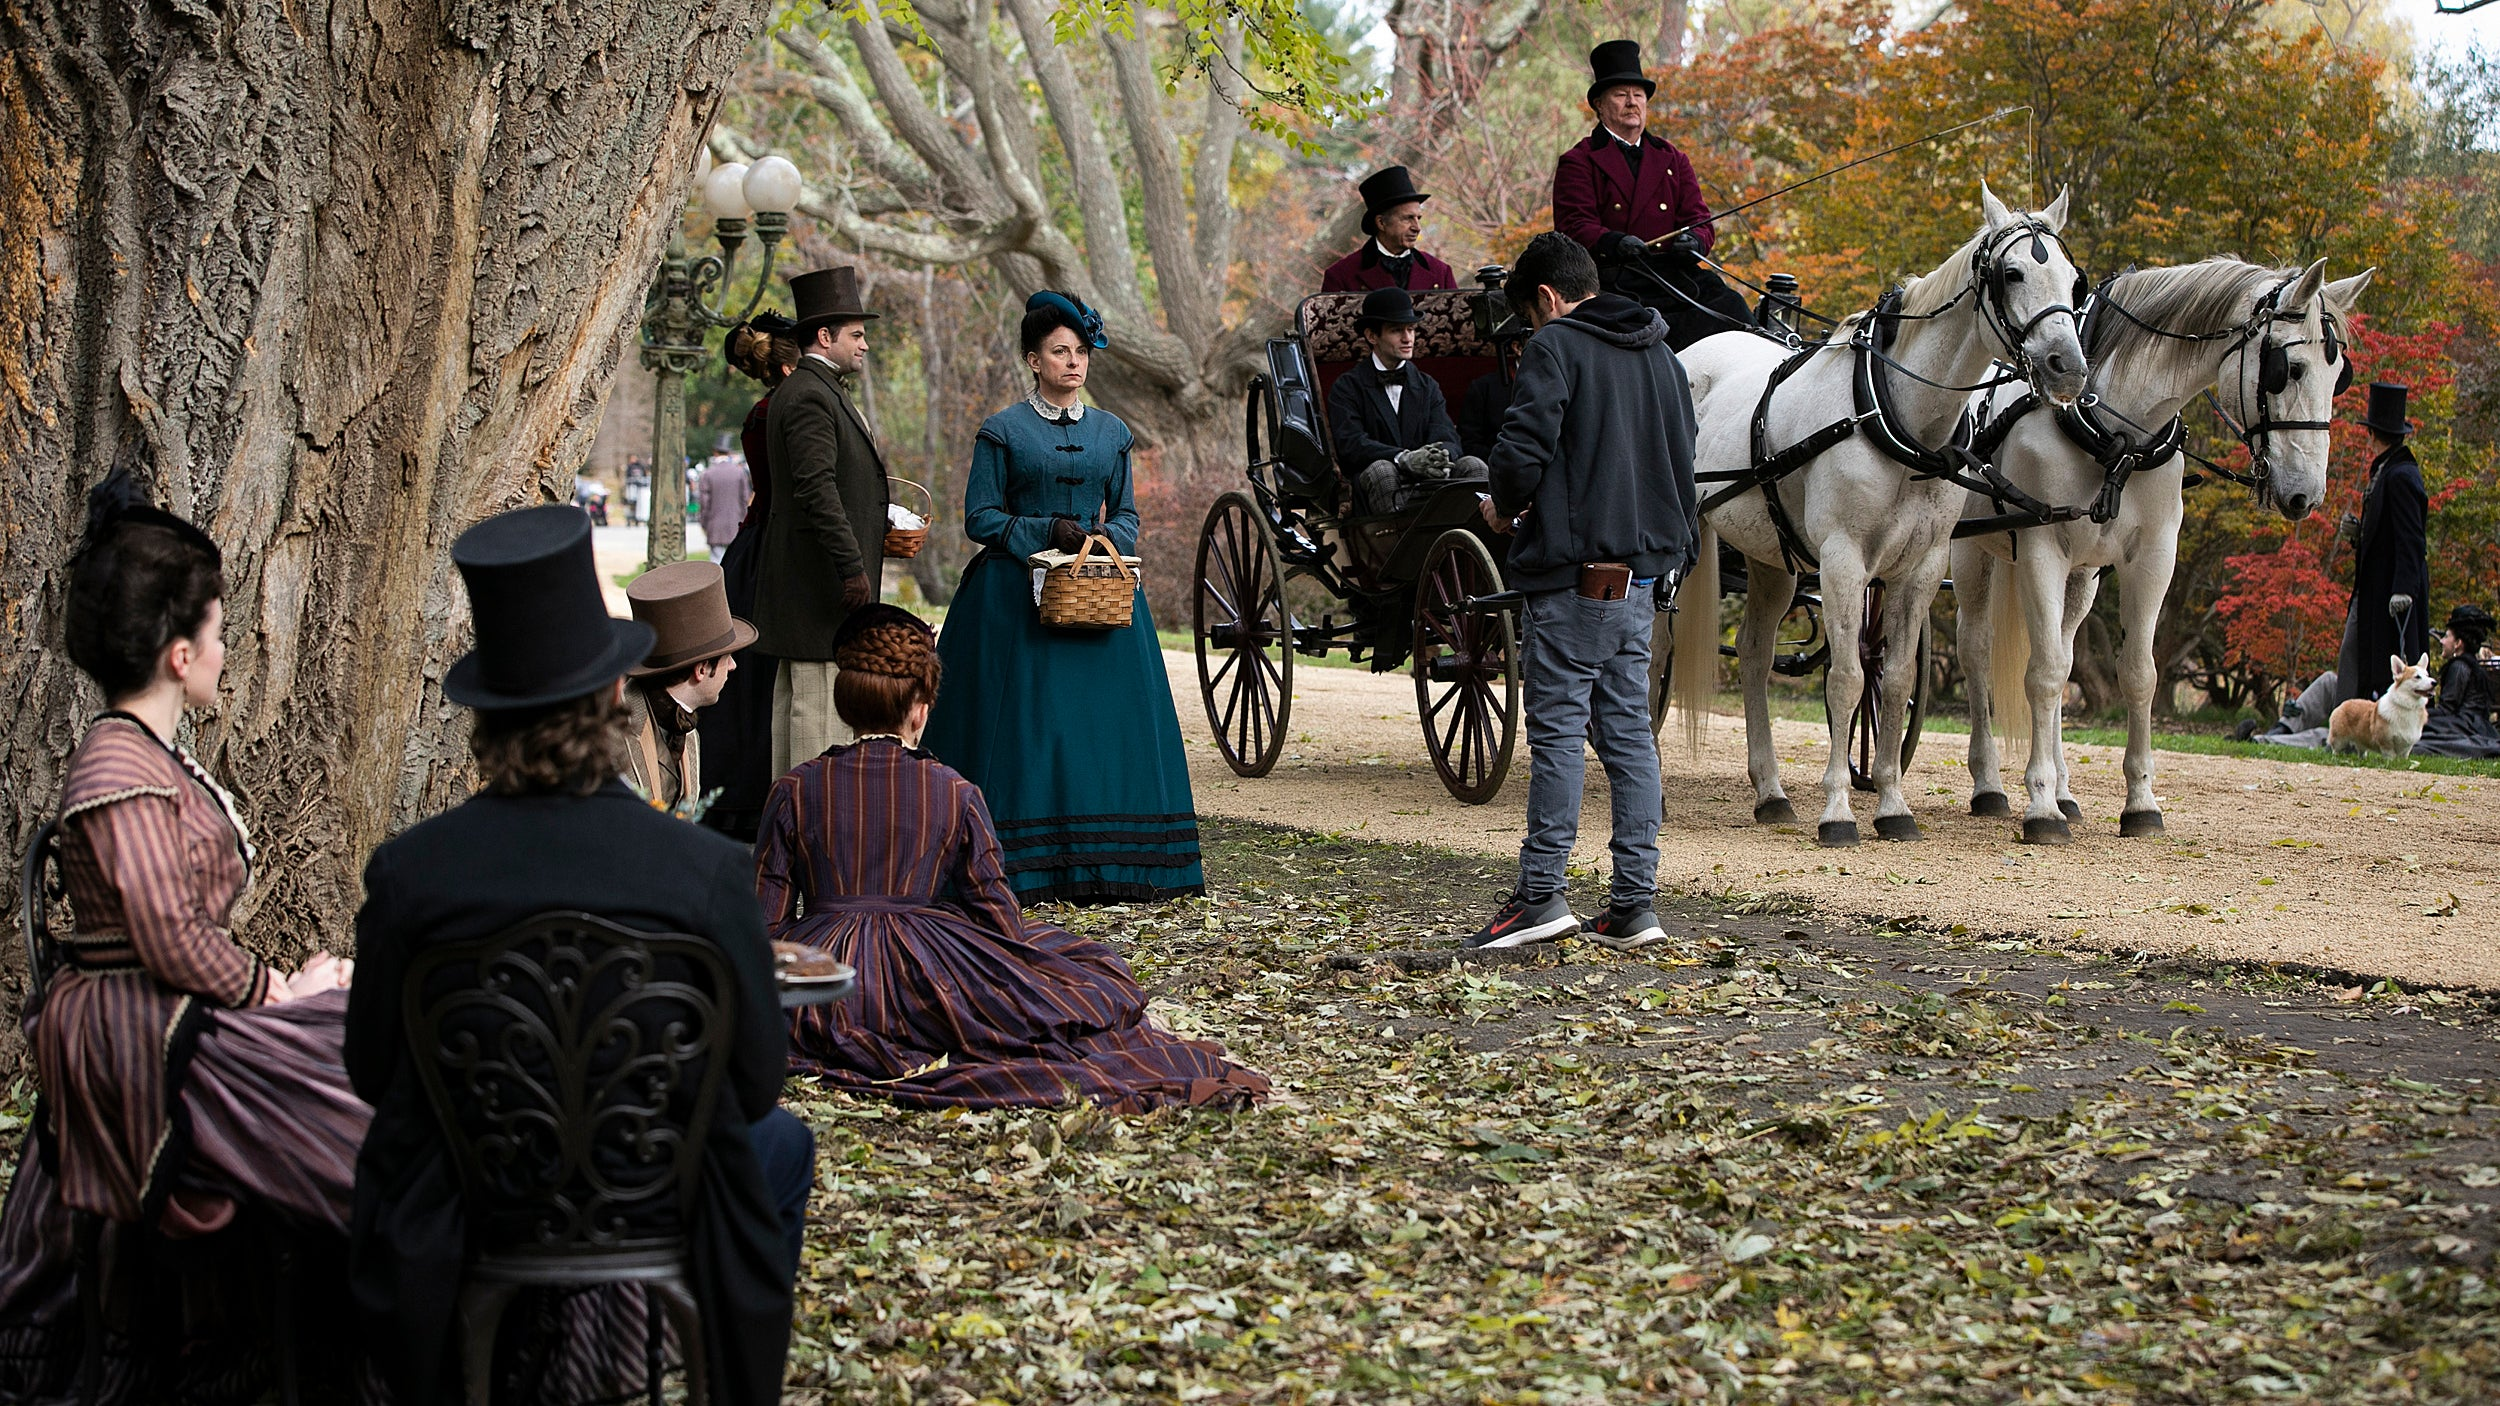 'Little Women' filmed at Arnold Arboretum.